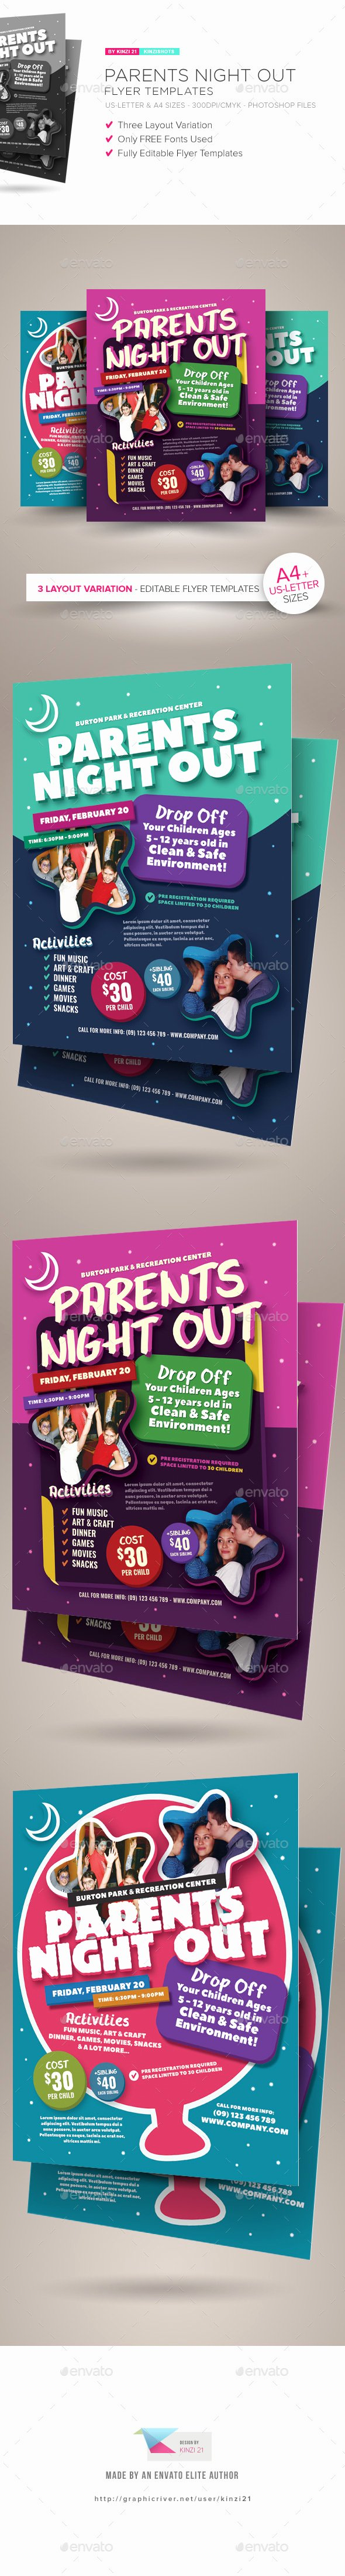 Parents Night Out Flyer Template Beautiful Parents Night Out Flyer Templates by Kinzishots